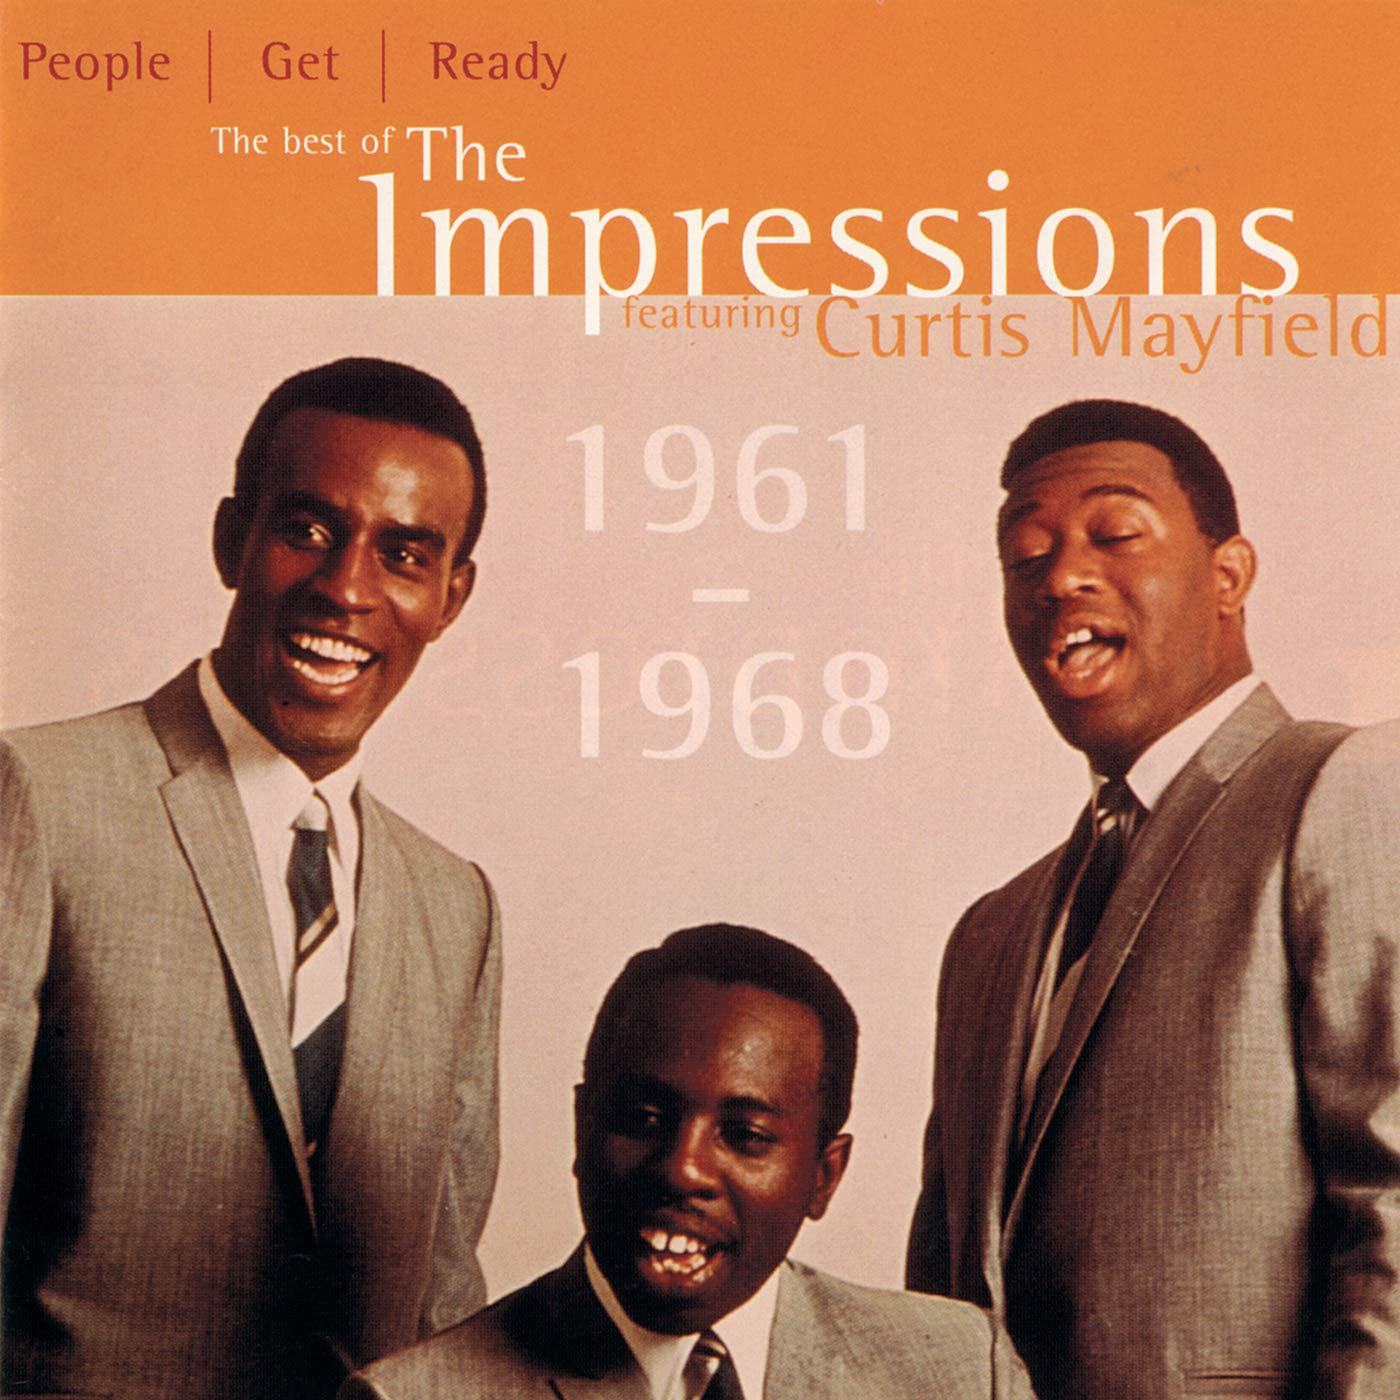 The Impressions Featuring Curtis Mayfield – People Get Ready: The Best Of The Impressions (1997) [FLAC]